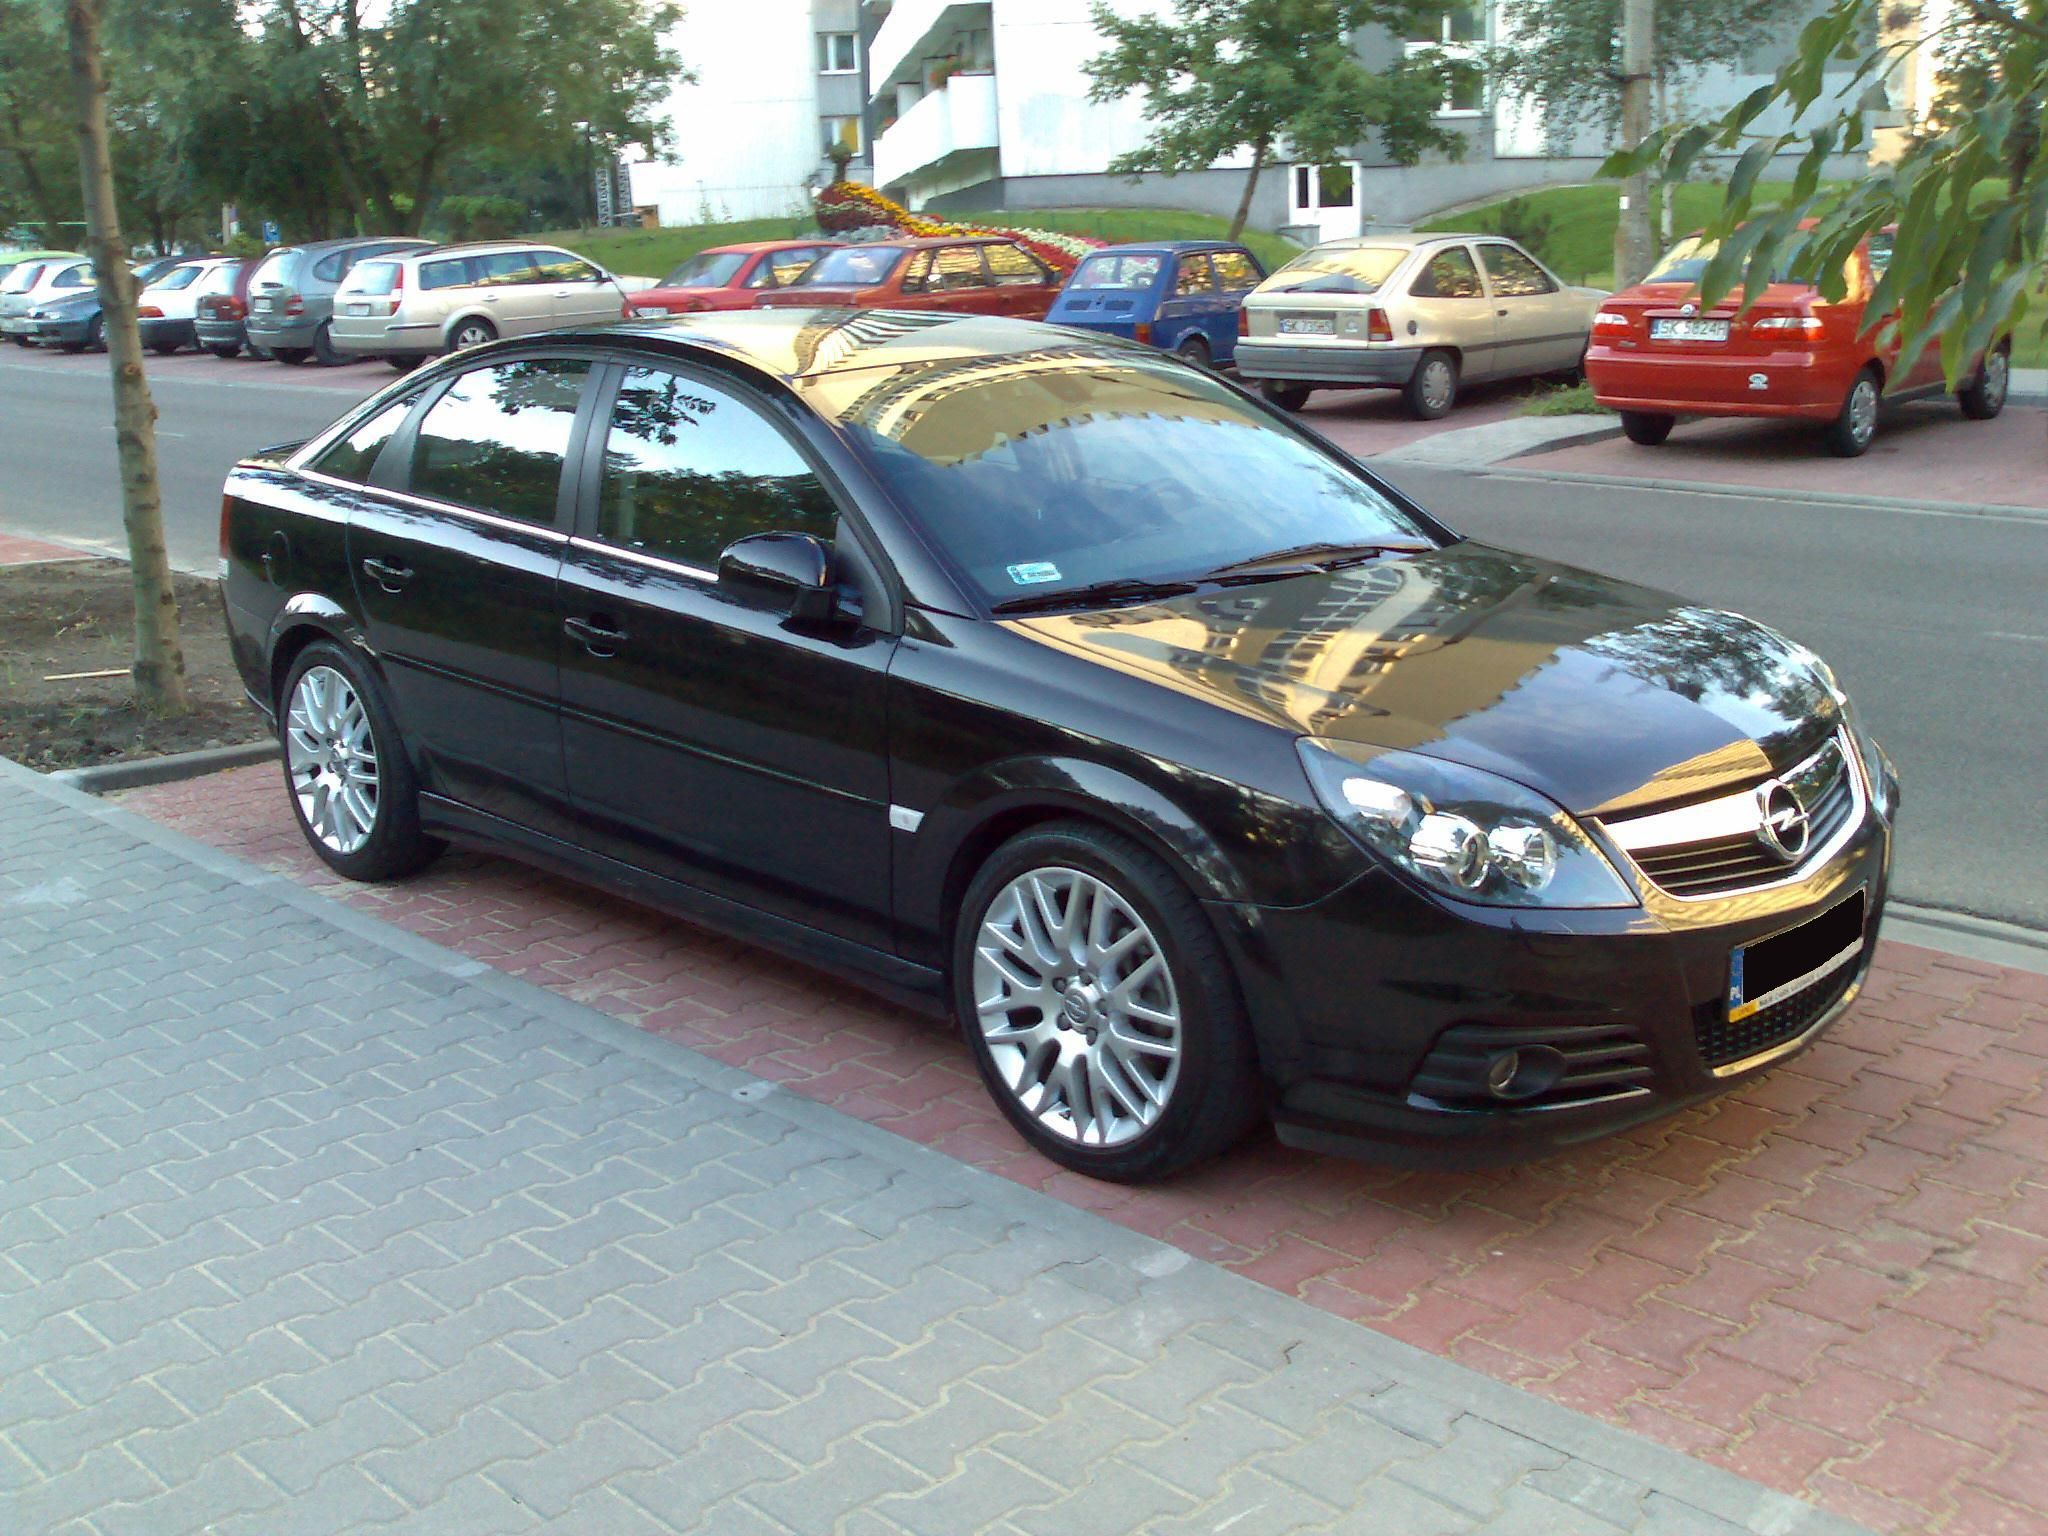 opel vectra gts 4 motorcycles cars pinterest cars. Black Bedroom Furniture Sets. Home Design Ideas